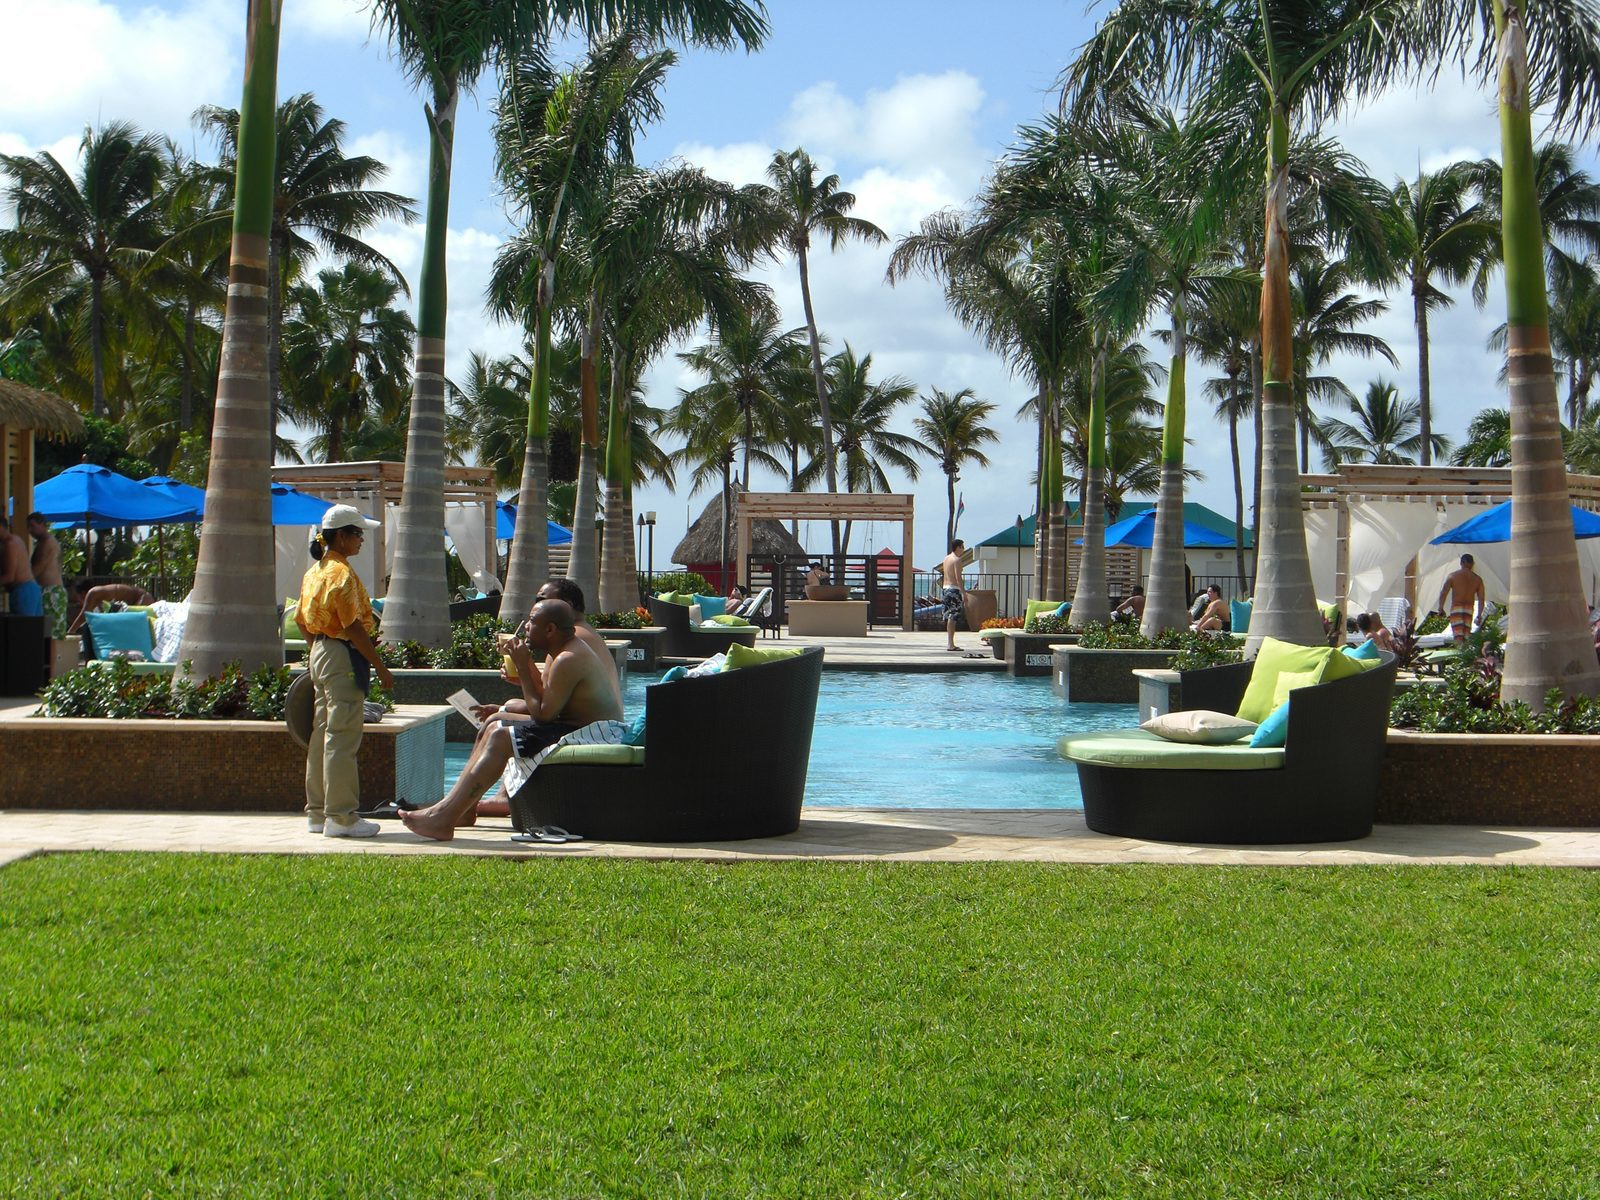 Aruba surf club